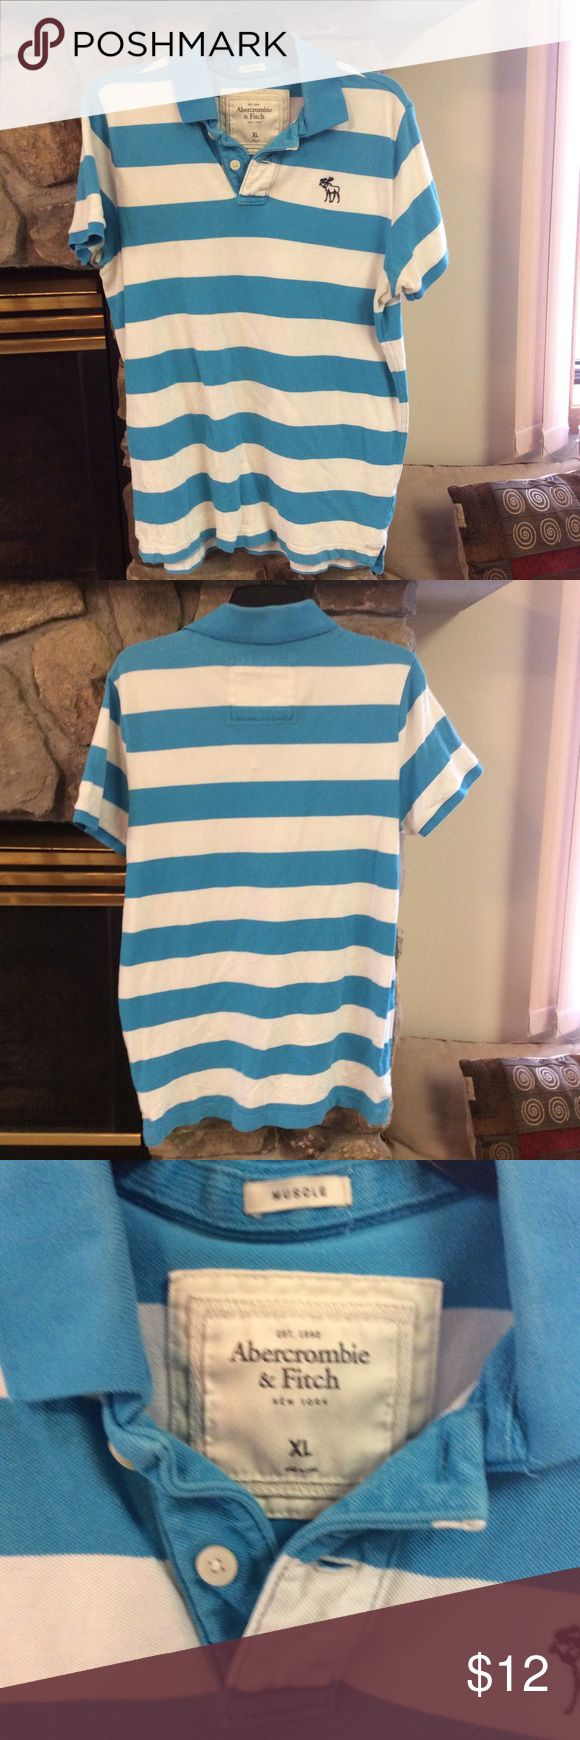 Abercrombie Men's Knit Polo Abercrombie men's knit short sleeve polo.  Size is XL.  This polo is in good condition. Bundle to save on shipping. Abercrombie & Fitch Shirts Polos